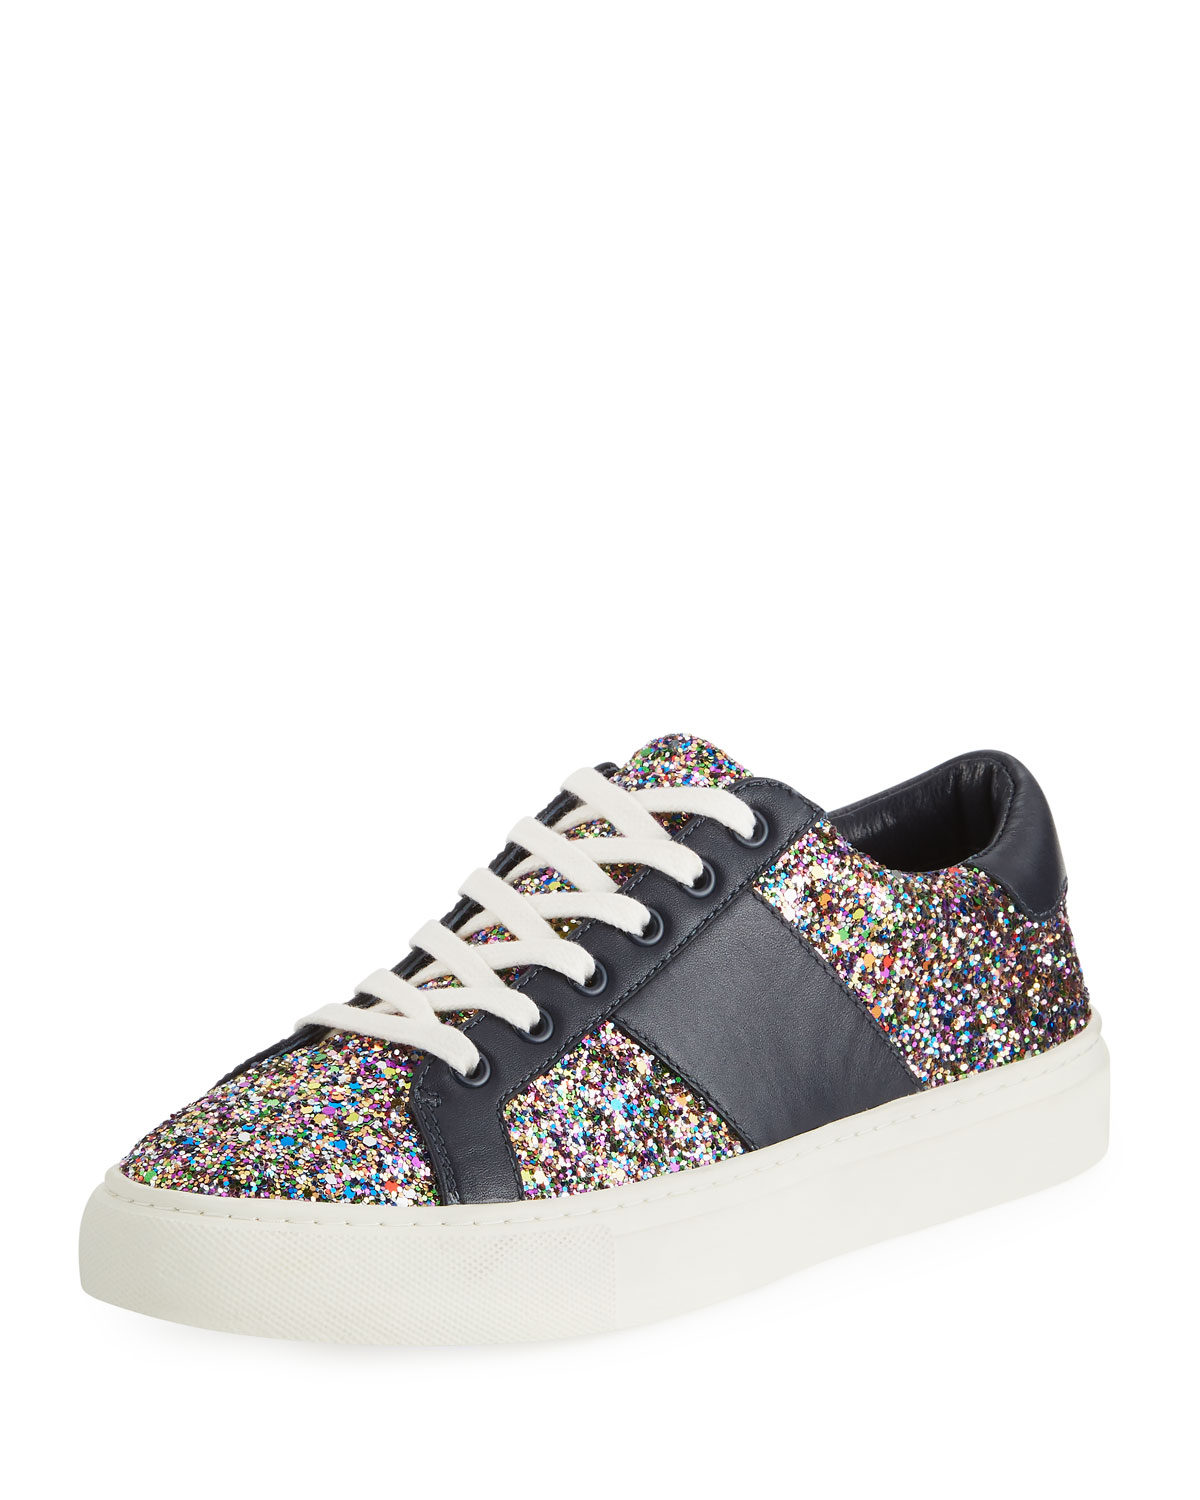 7caf391caa49 Tory Burch Carter Glitter Low-Top Lace-Up Sneakers